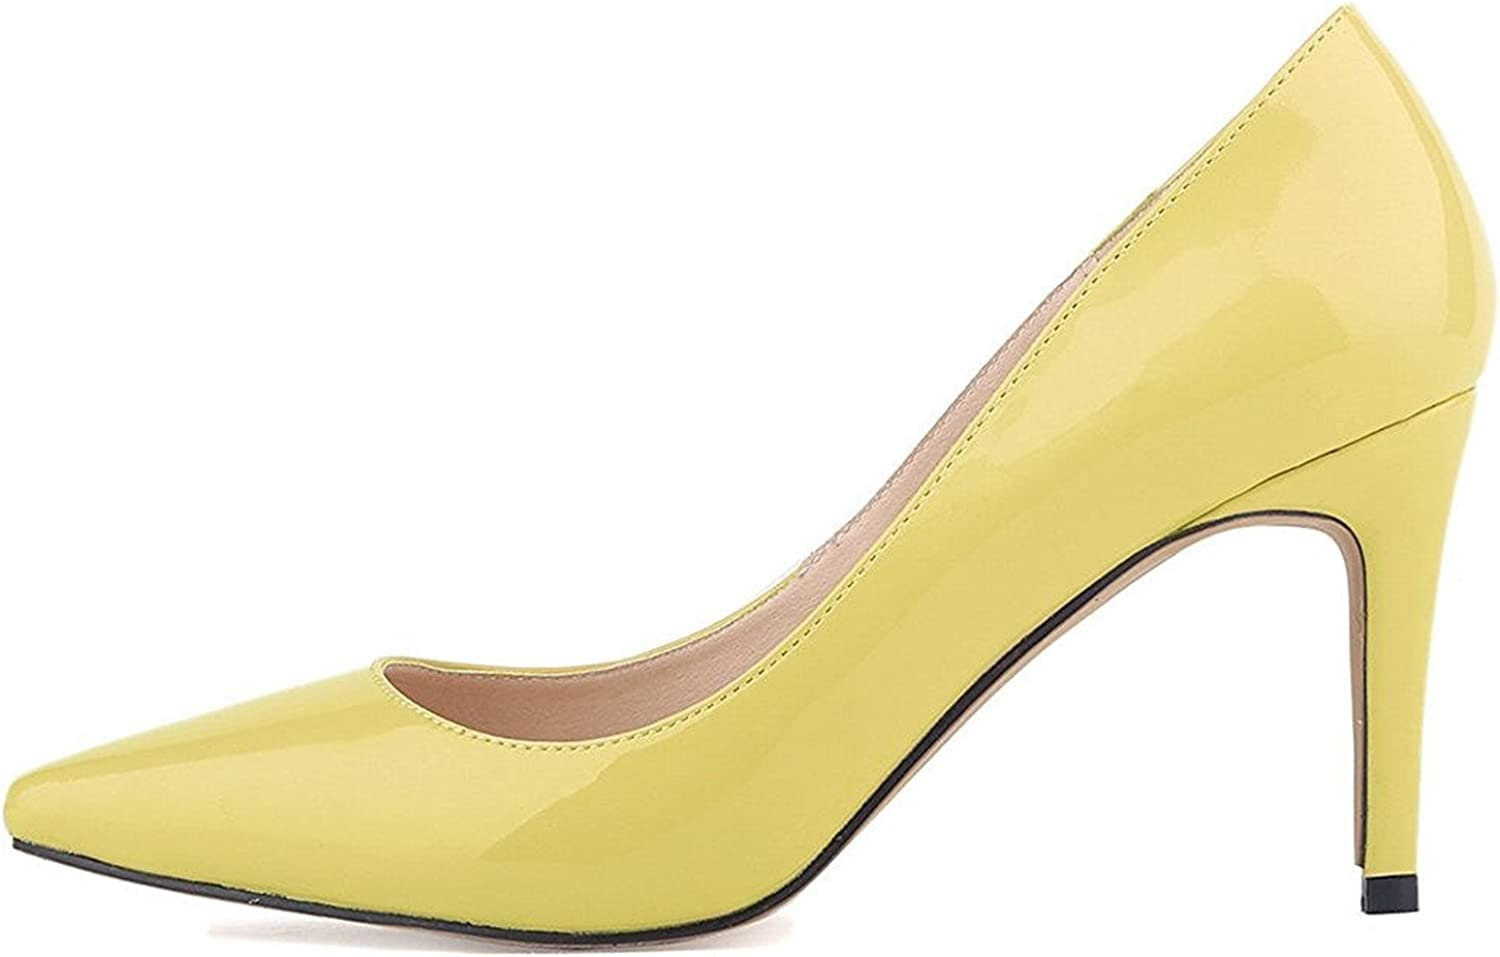 Oppicong Womens shoes Closed Toe High Heels Women's Pointed Slender Leather Pumps Yellow,8cm heels9.5 B(M) US